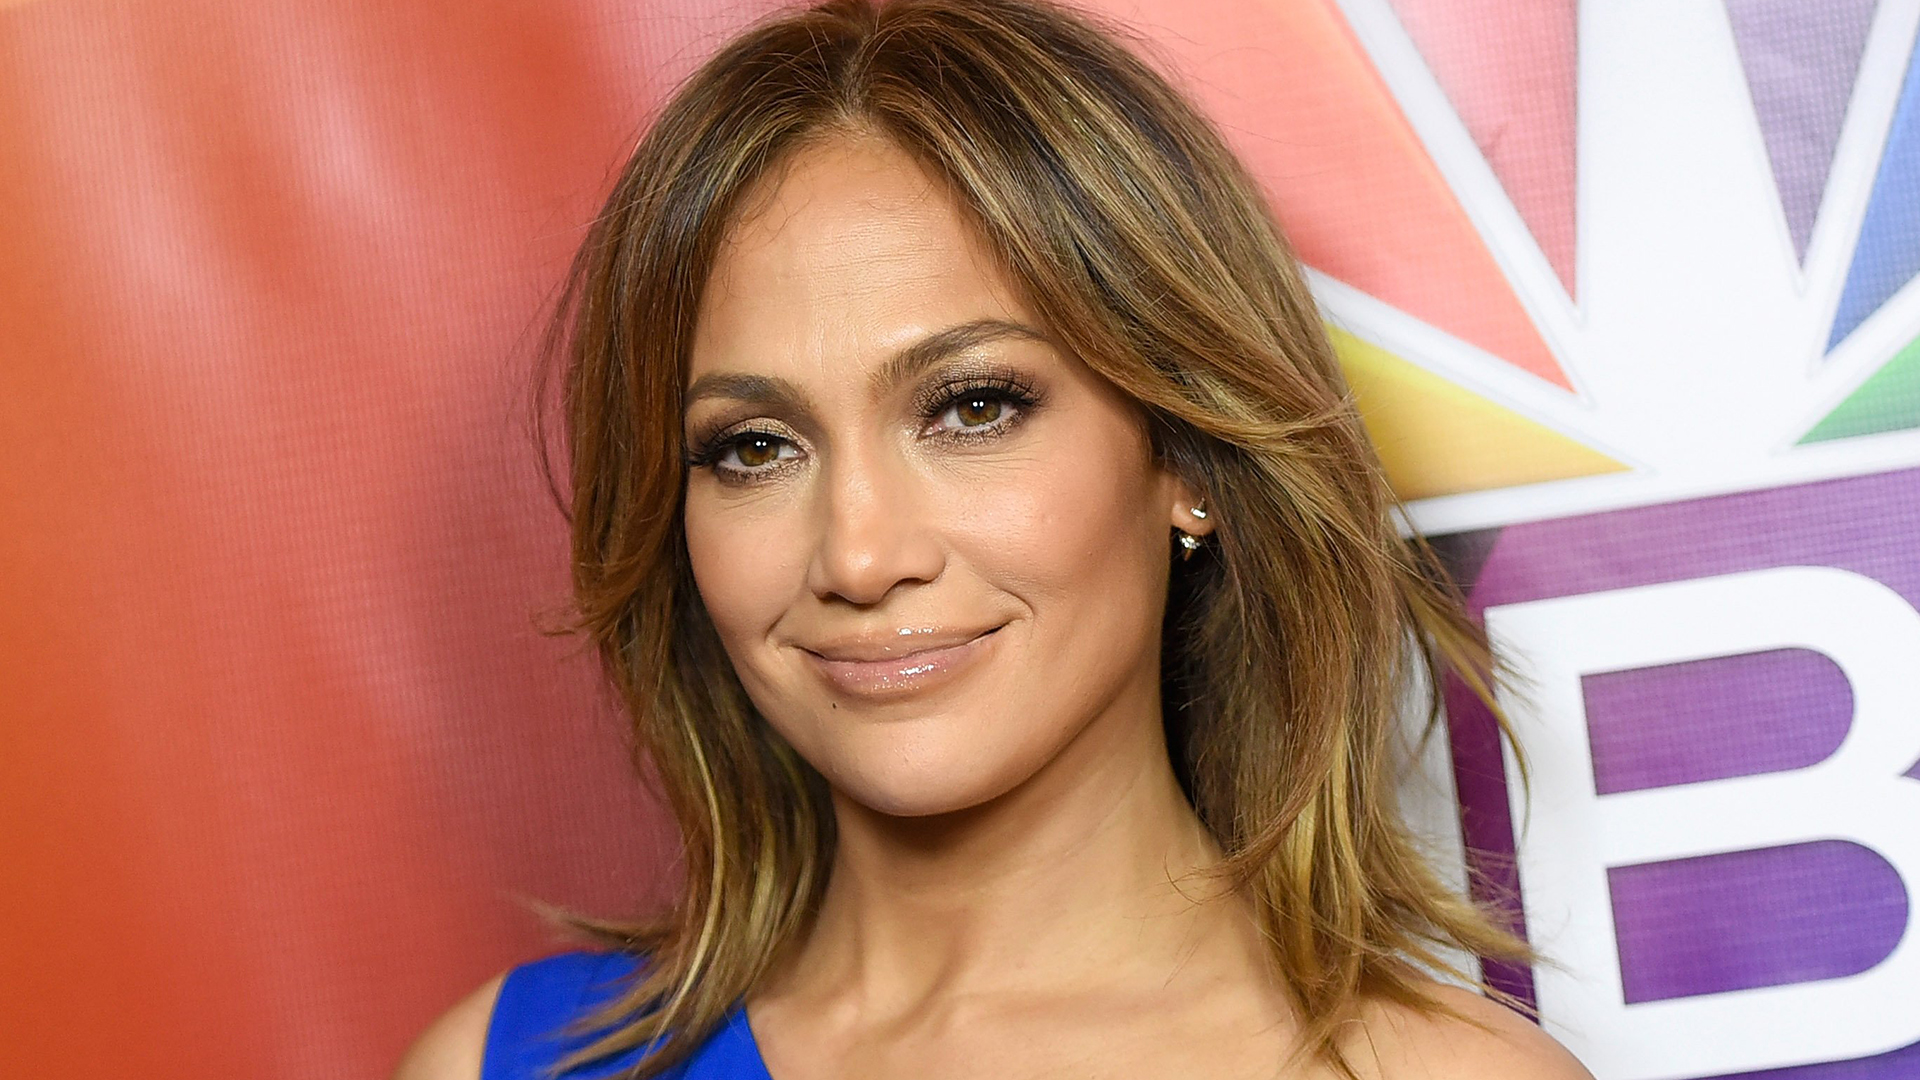 Jennifer Lopez goes totally makeup-free in funny Instagram clip - Today.com